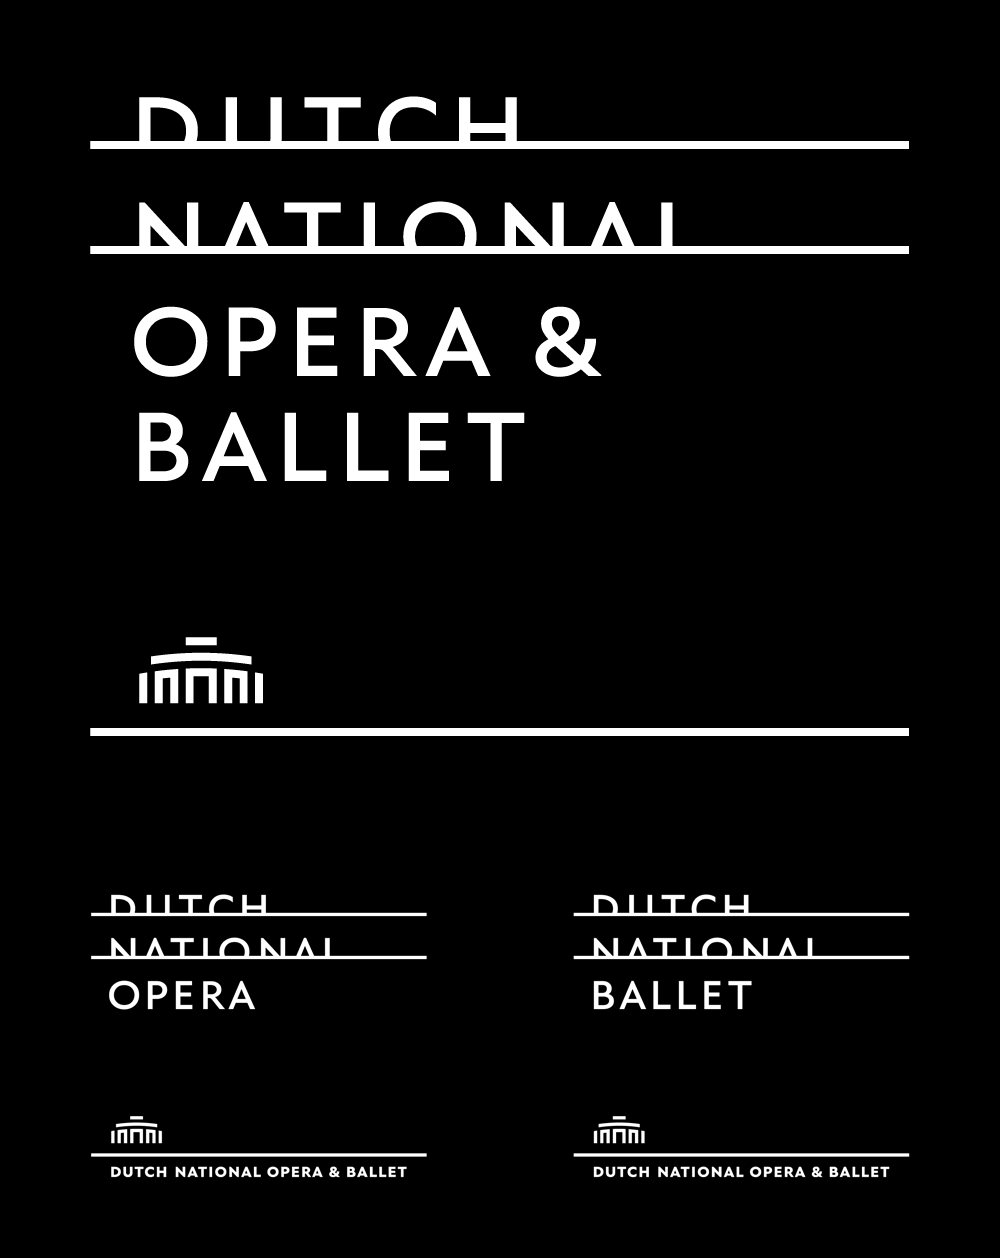 dutch_national_opera_and_ballet_logo